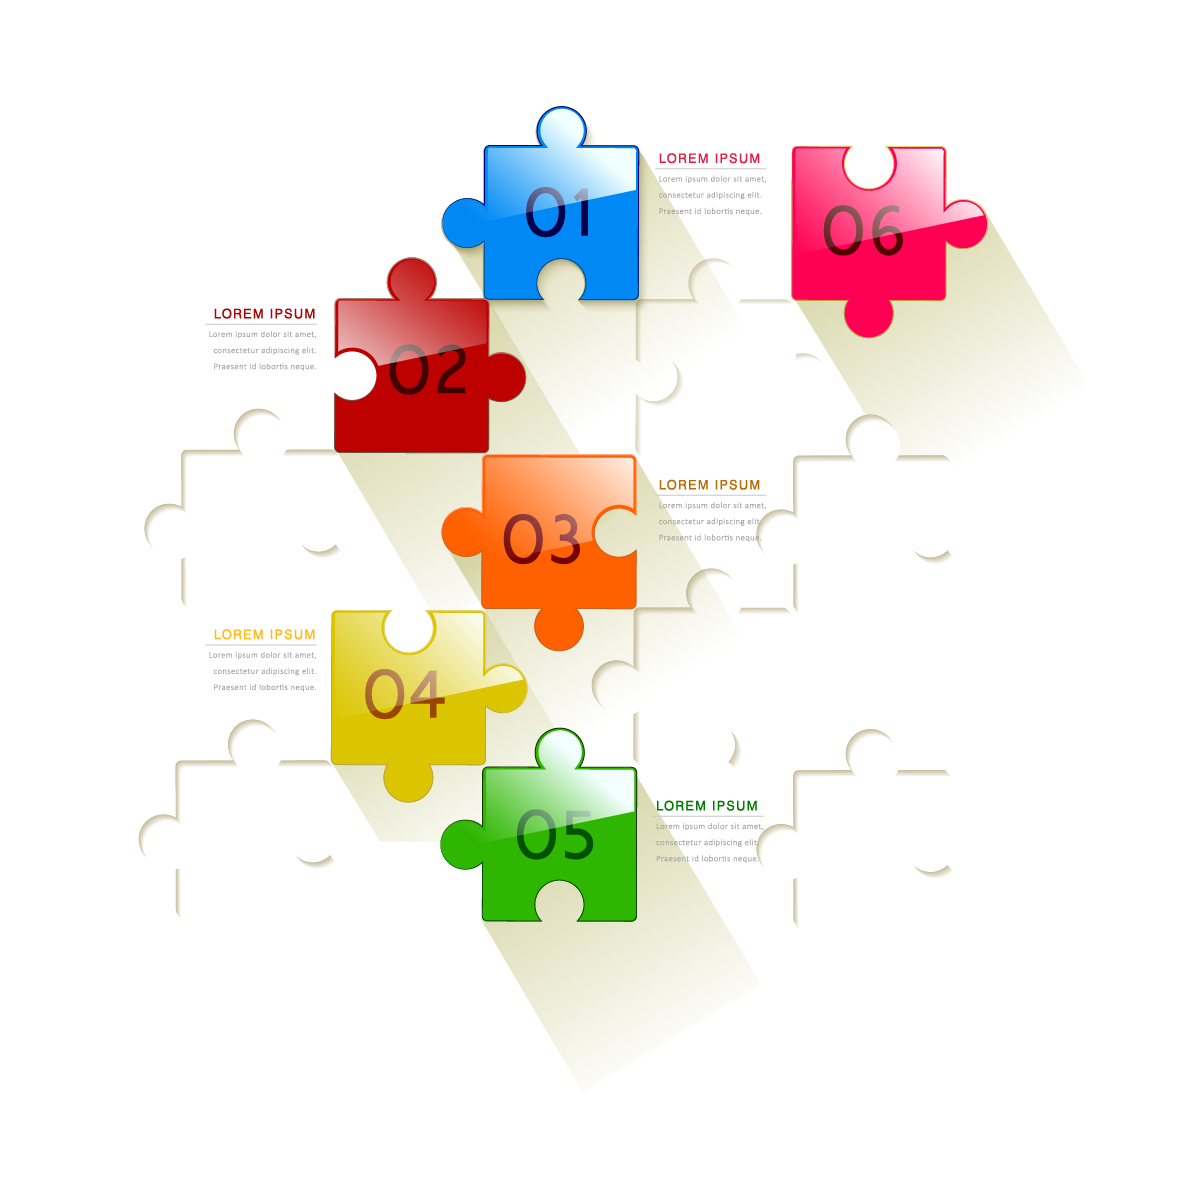 Jigsaw Puzzles Graphic Design Infographic - Vector Puzzle Ppt Material  1181*1181 Transprent Png Free Download - Diagram, Square, Text. - Puzzle PNG HD Powerpoint